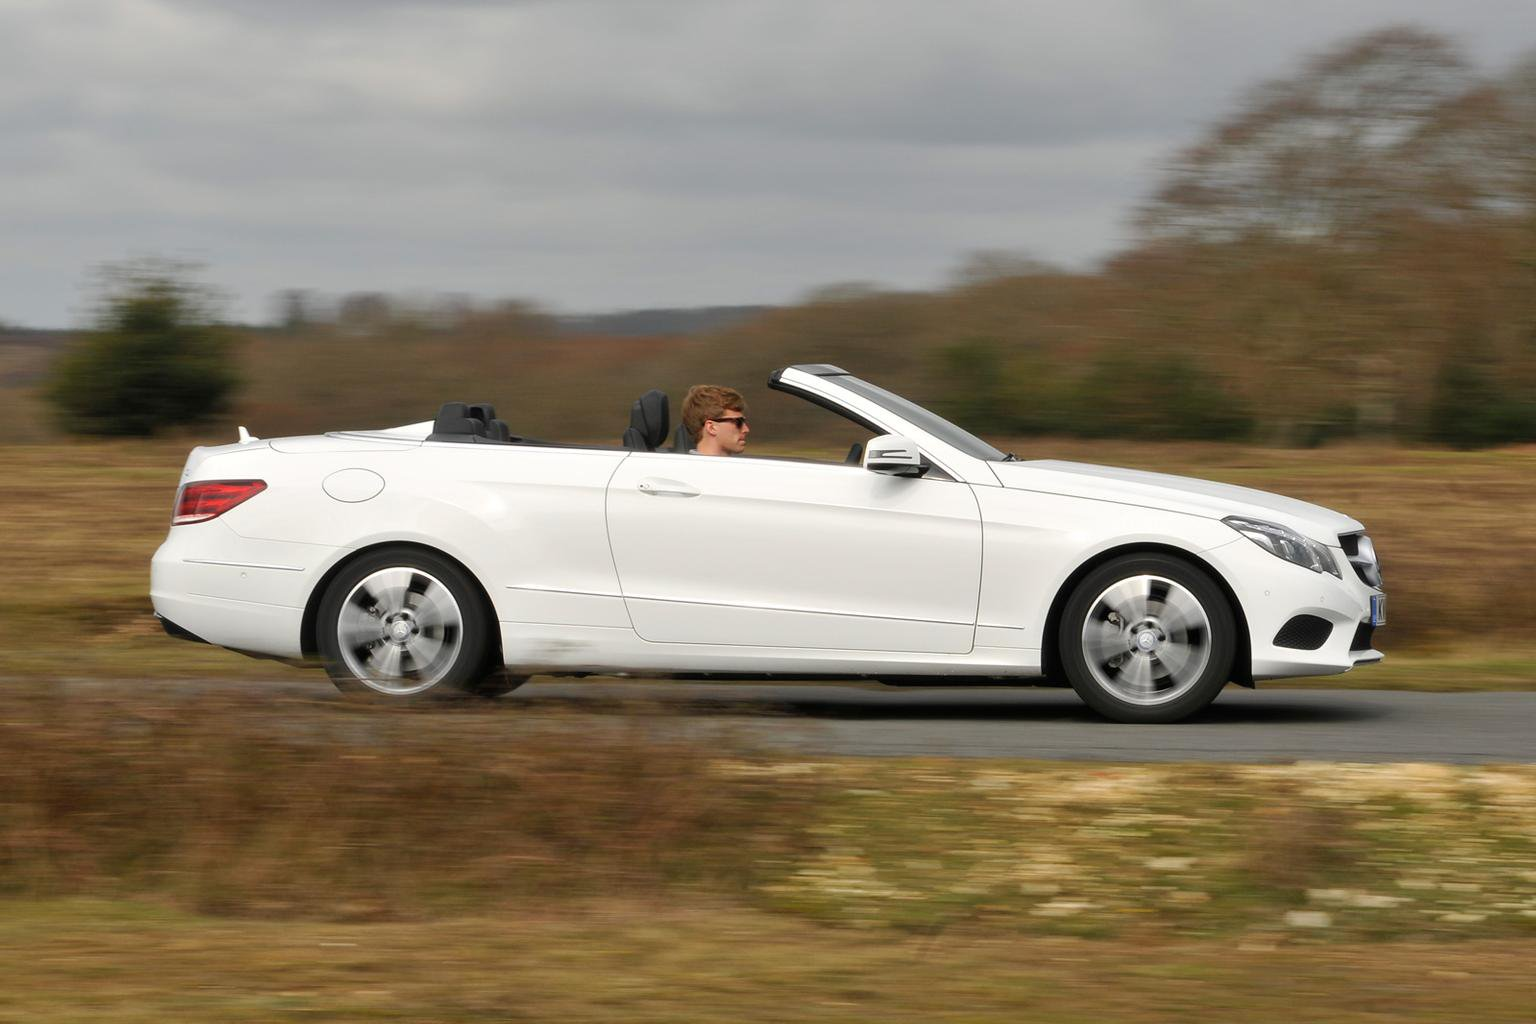 Deal of the day: Mercedes E-Class Cabriolet